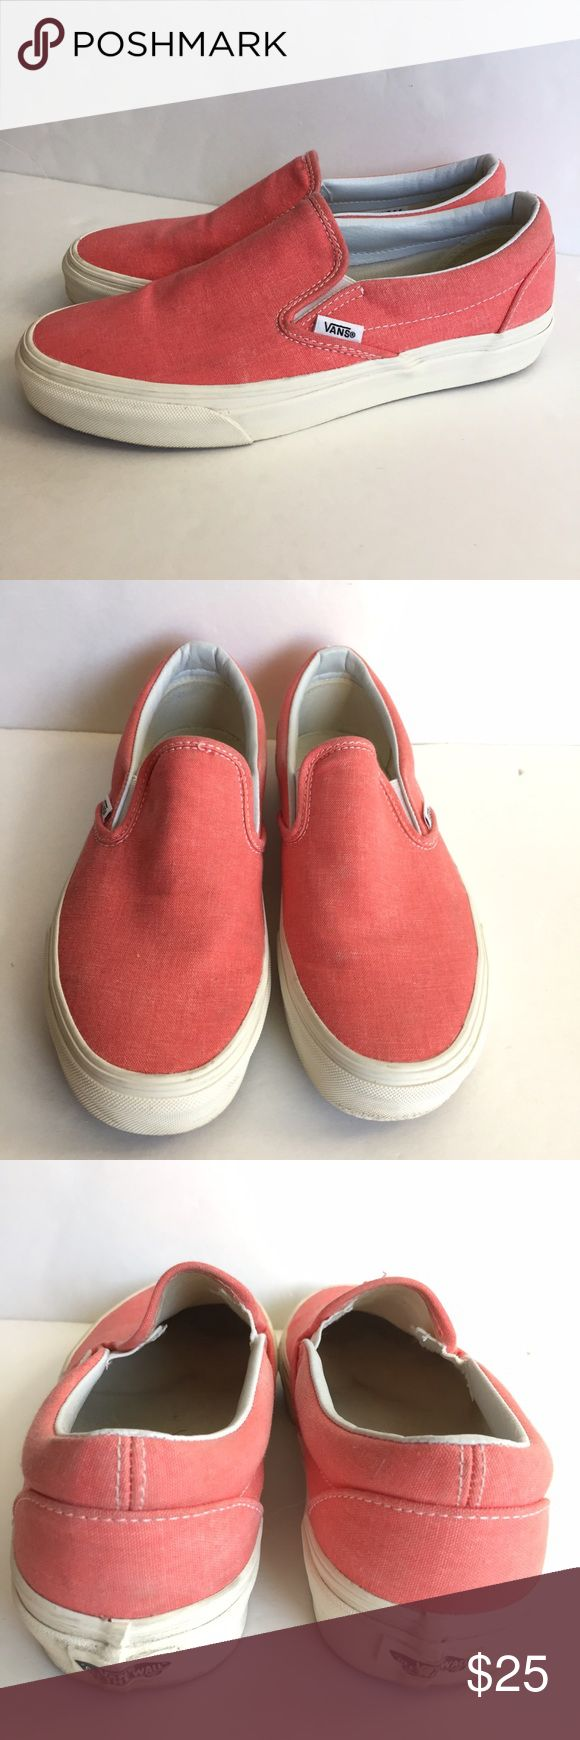 (Washed) Hot Coral Vans •Unisex •Canvas upper •Slip-on design  •Waffle sole •True to size •Fair condition  •Sold w/ box Vans Shoes Sneakers